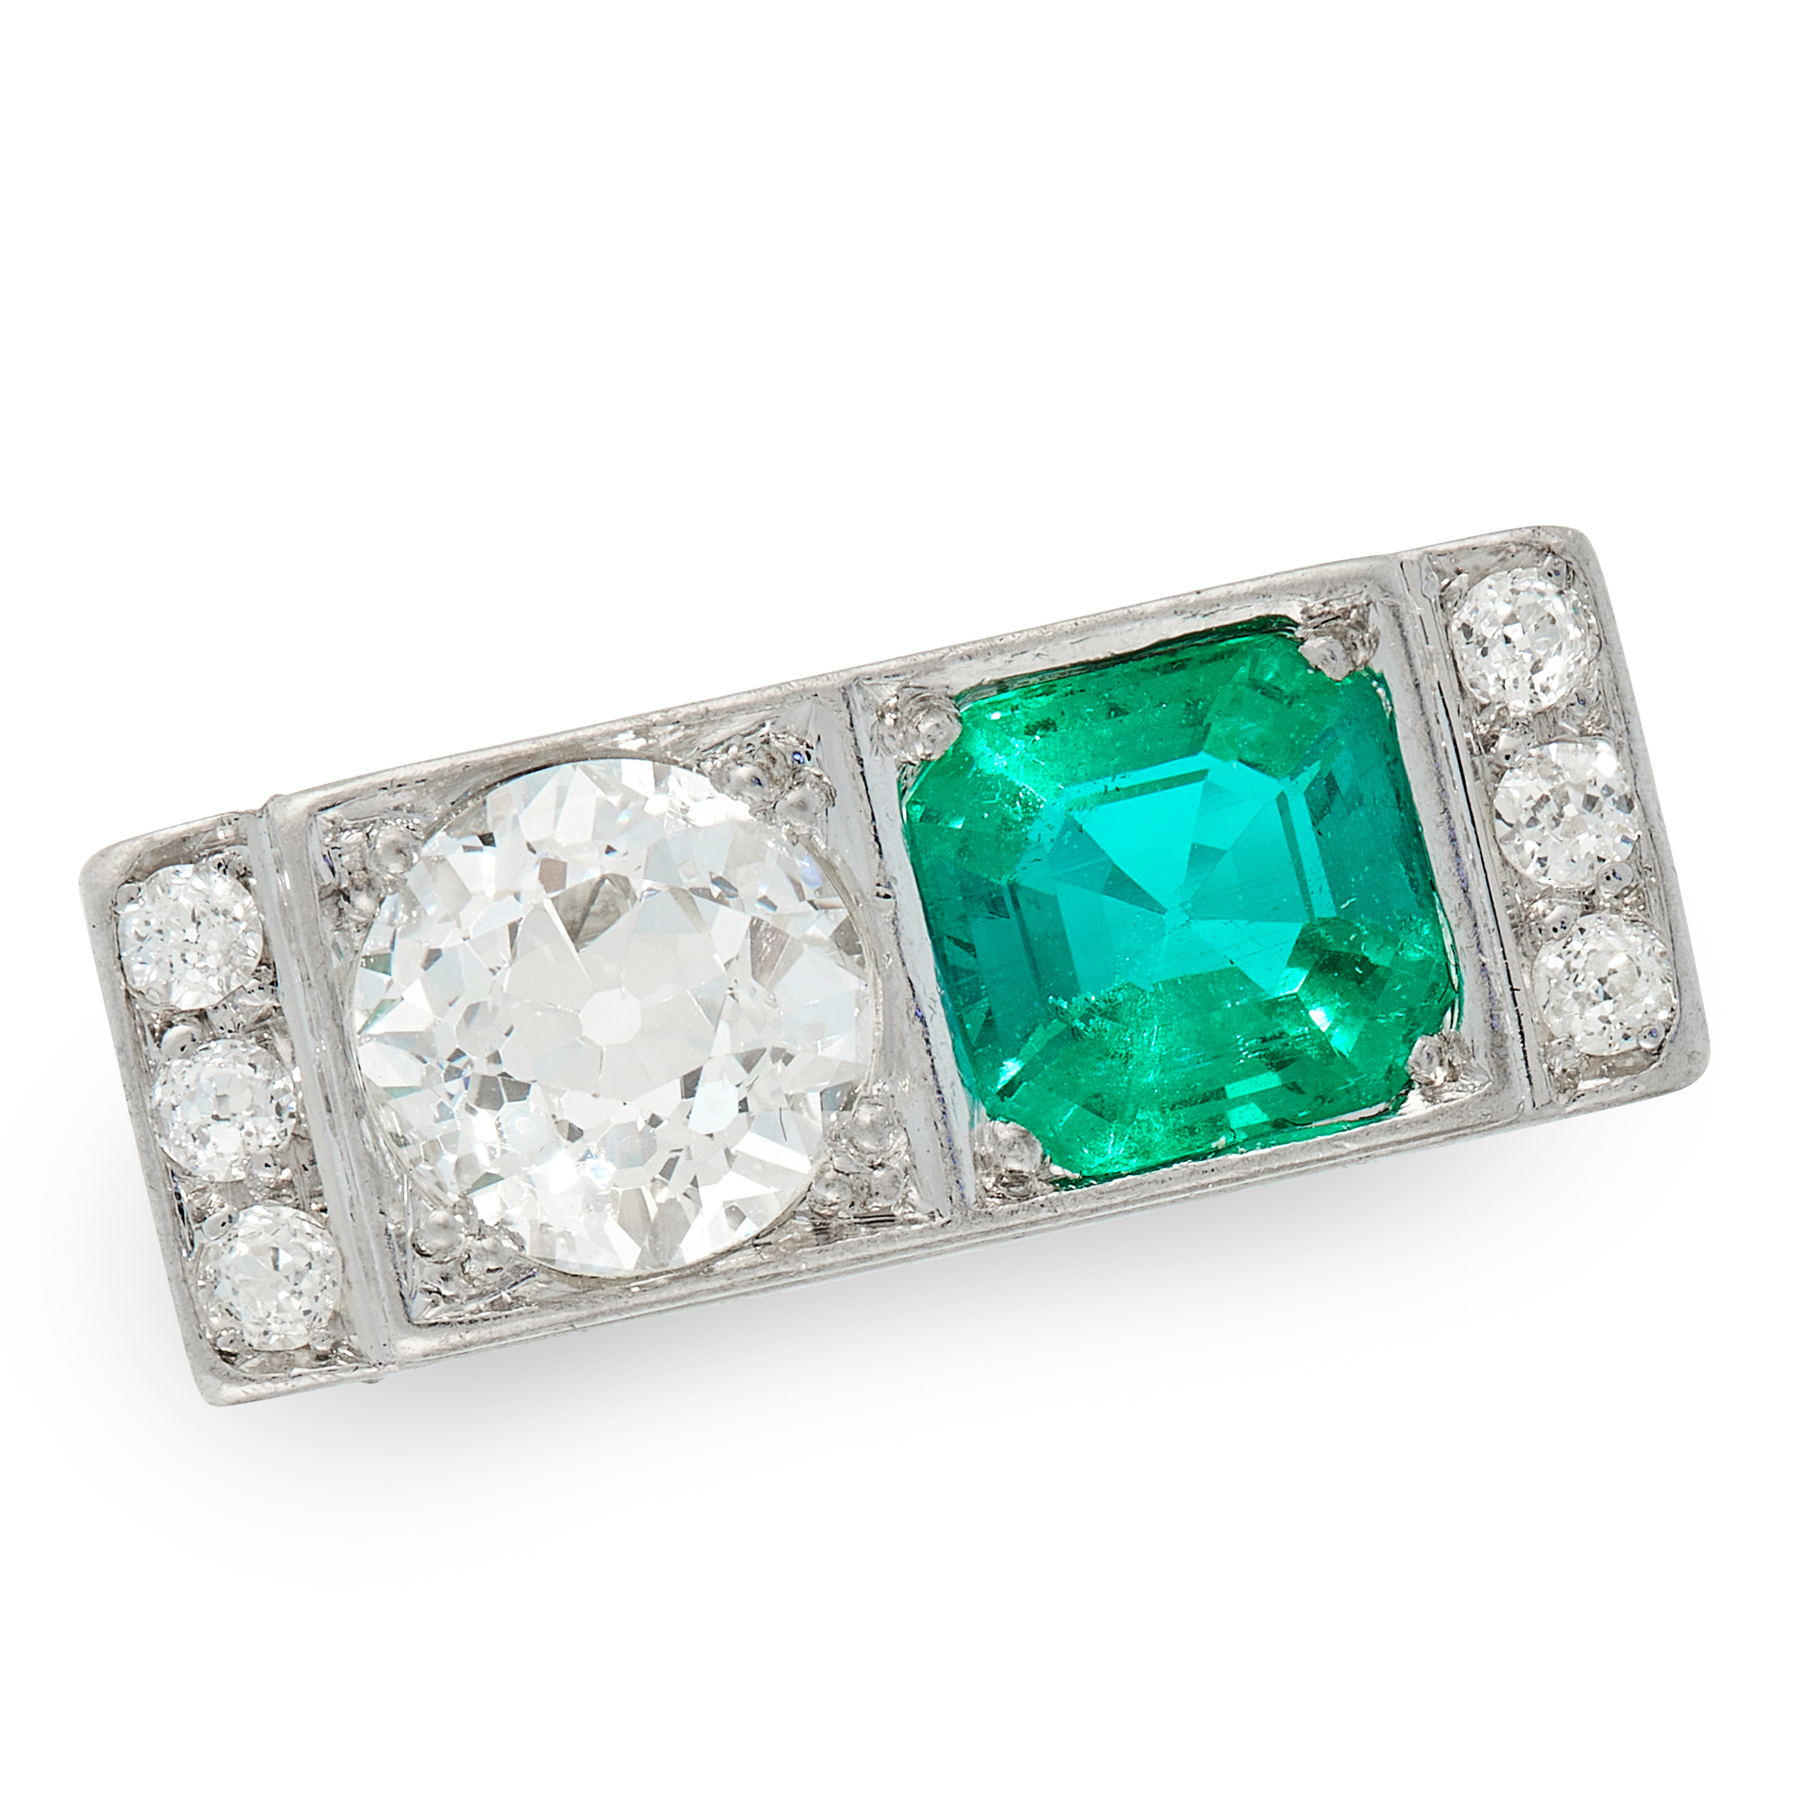 AN ART DECO COLOMBIAN EMERALD AND DIAMOND RING the rectangular face set with an emerald cut